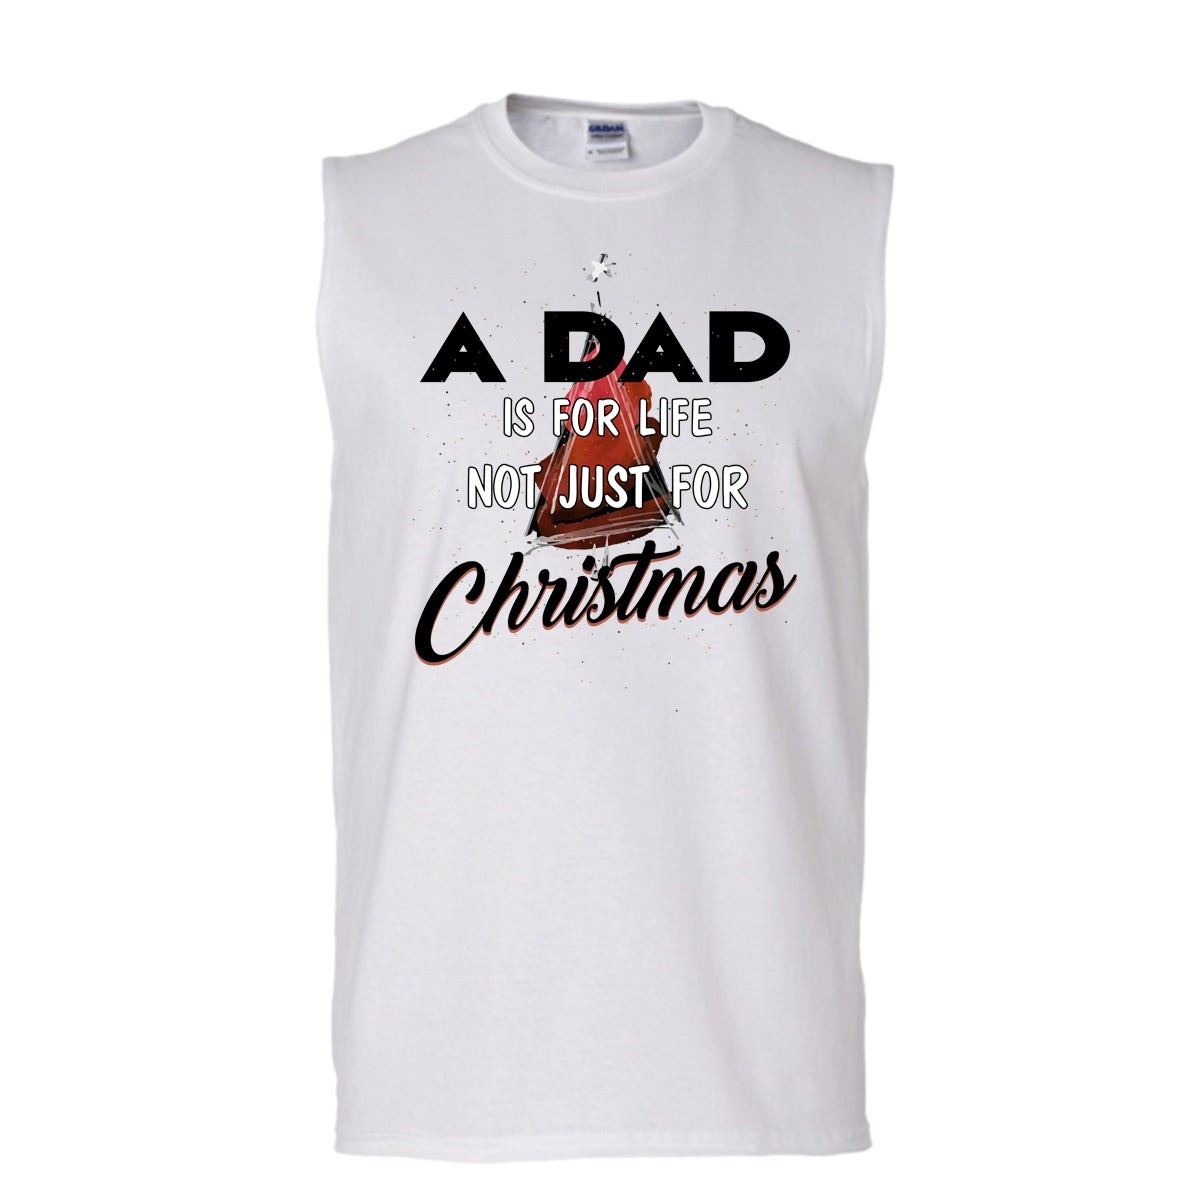 2ca484bf A Dad Is For Life Not For Christmas T Shirt, Merry Christmas Gift T ...